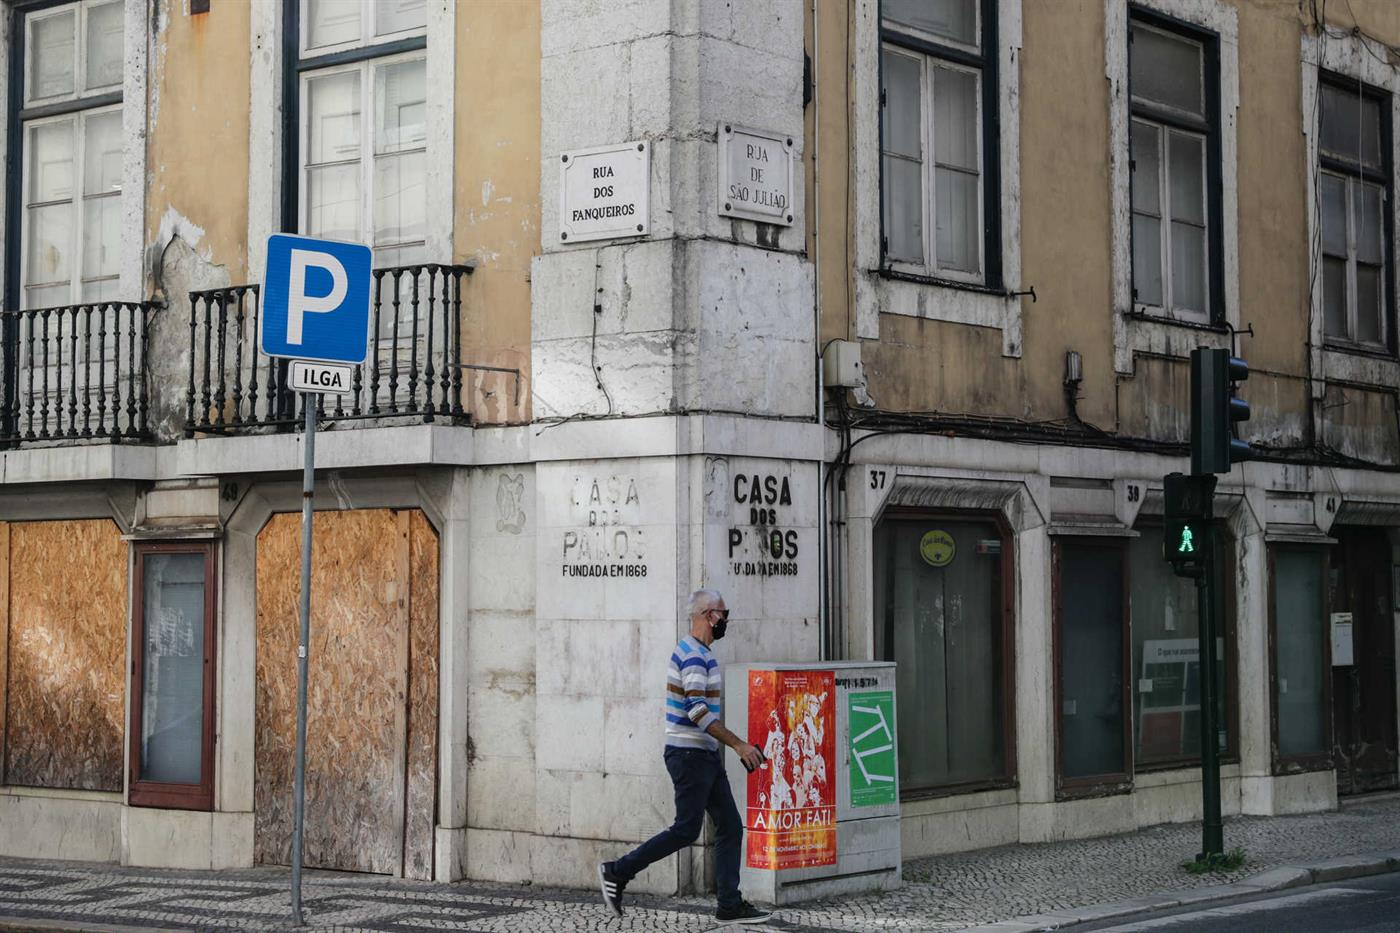 Tourists disappeared and in the downtown Lisbon area stood still